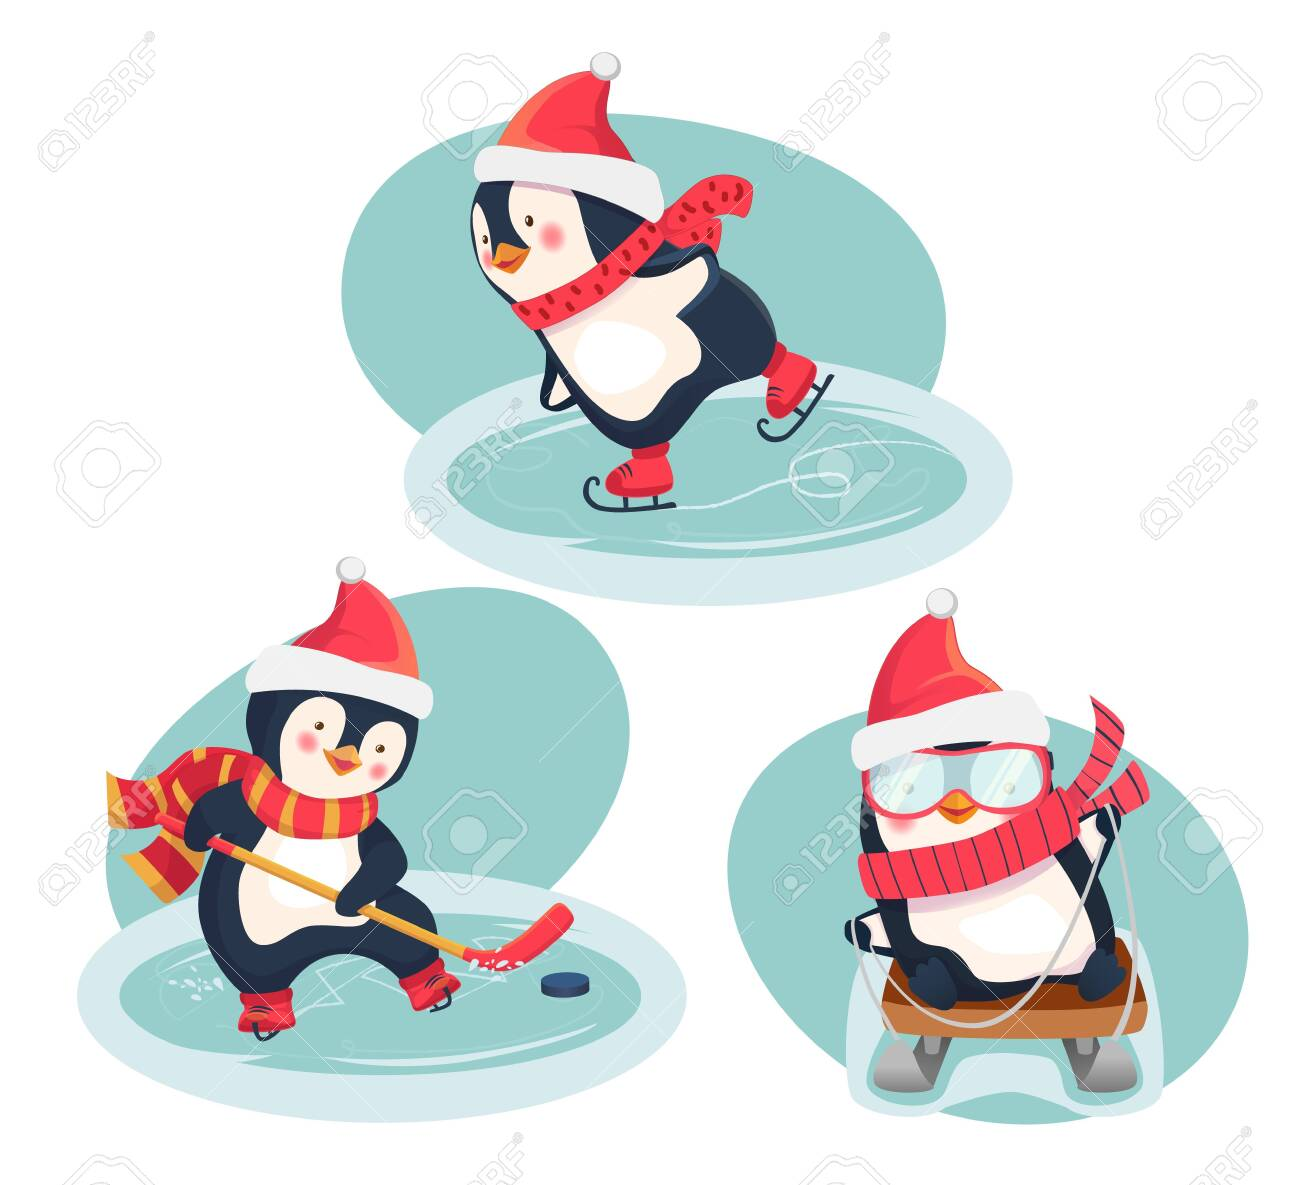 Christmas penguins in winter. Winter sports. Childrens sports concept. Vector illustration. - 125898183